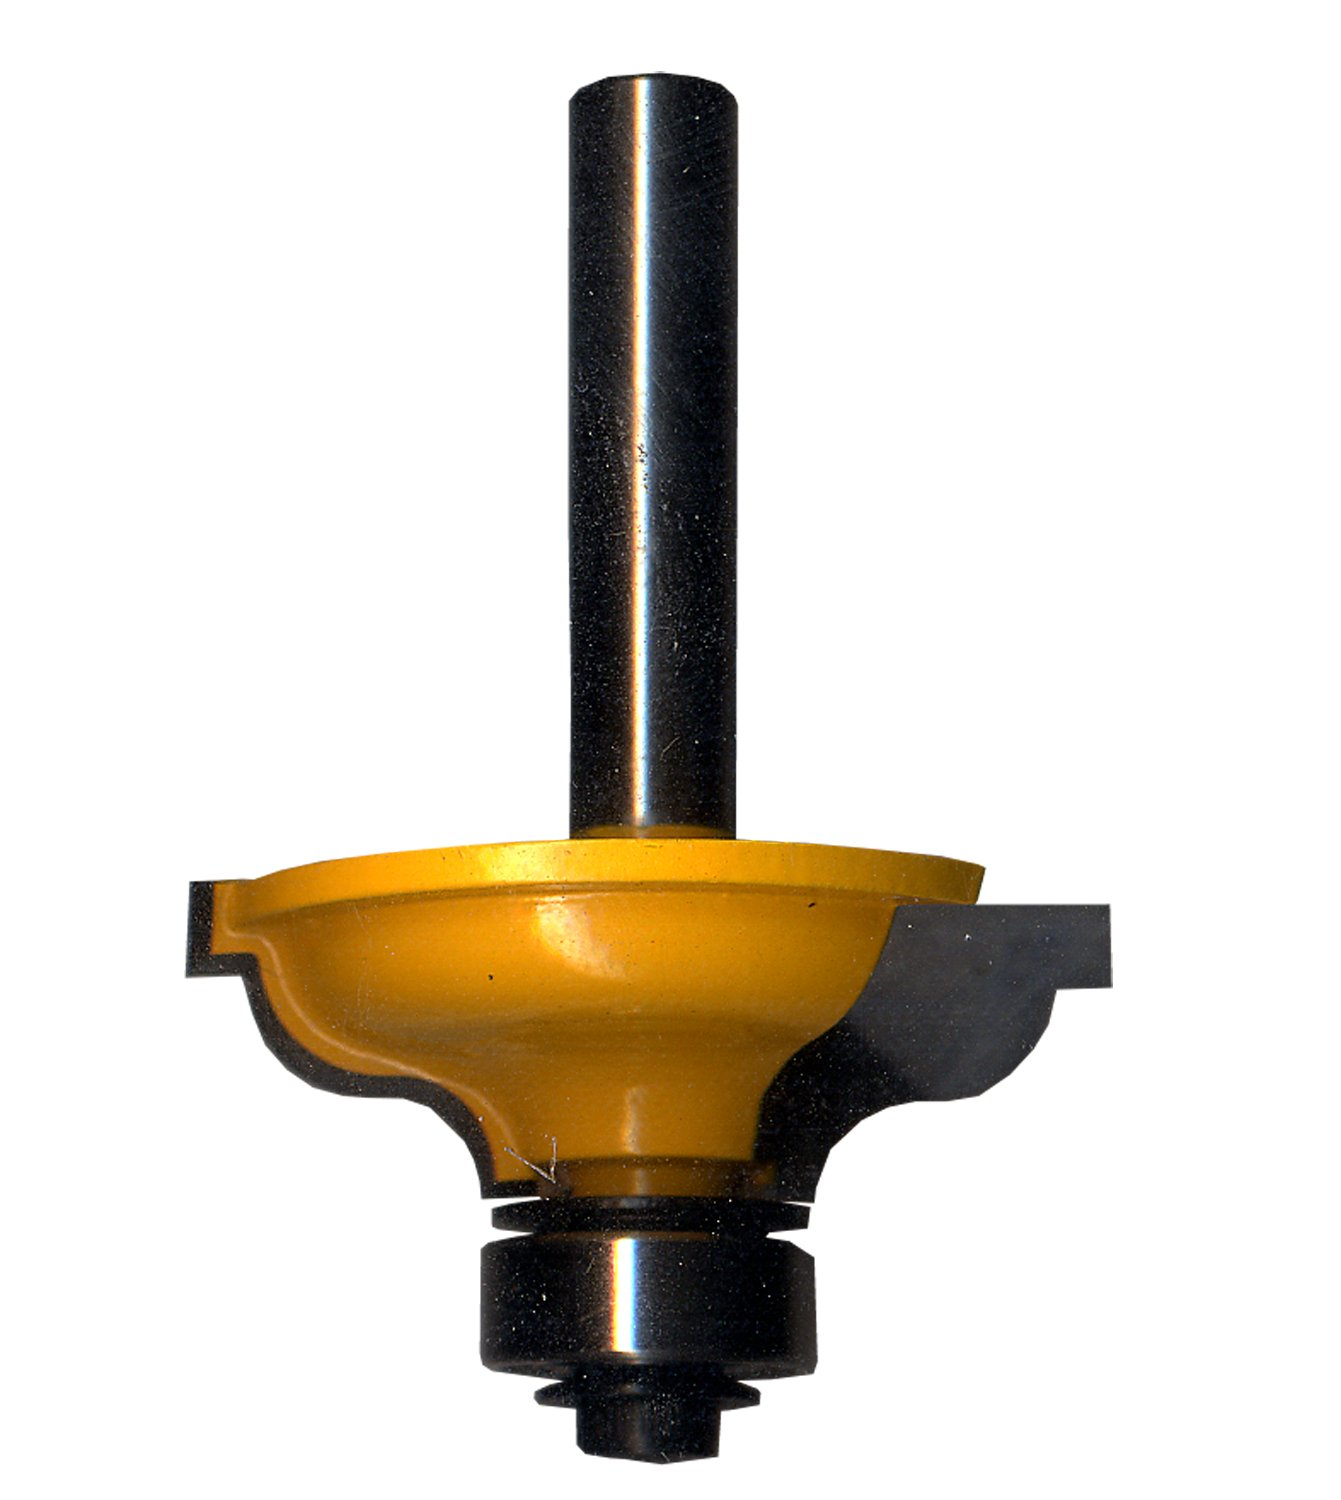 Task Tools T24293 Roman Ogee Fillet Router Bit with 1/4-Inch Shank, 1-3/8-Inch by 1/2-Inch Carbide Height, 3/16-Inch Radius